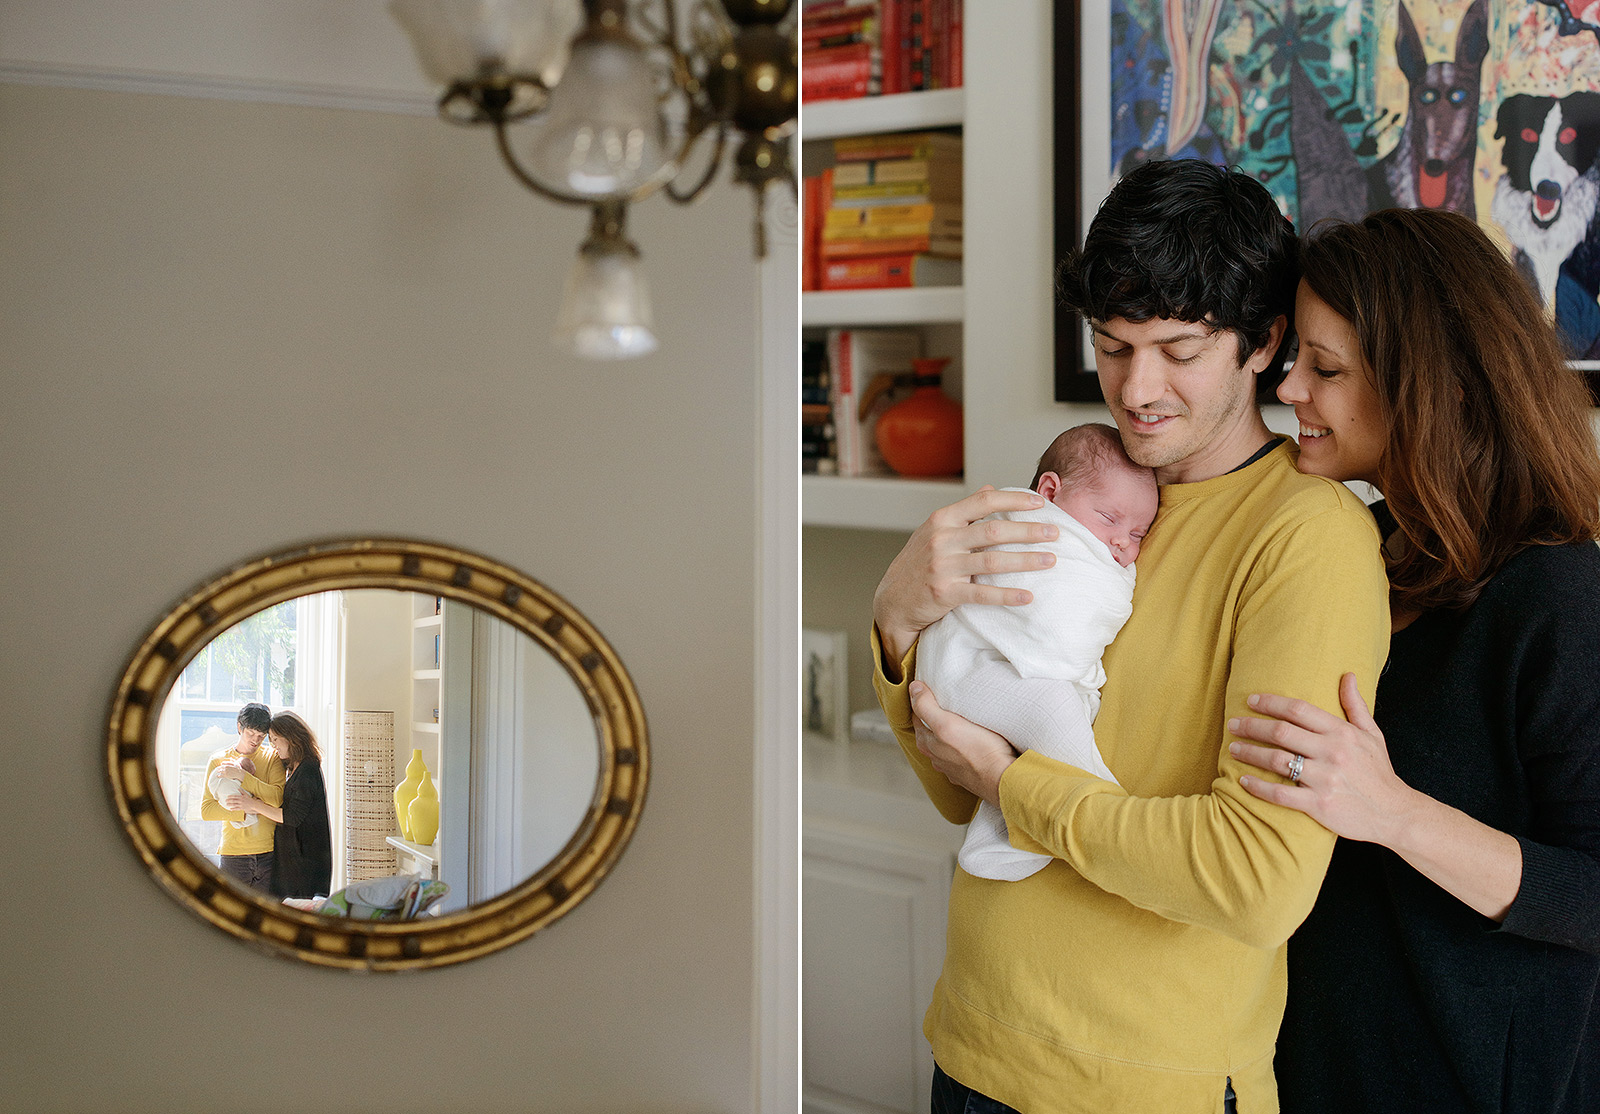 Mom and Dad Hug New Baby Reflection in Mirror